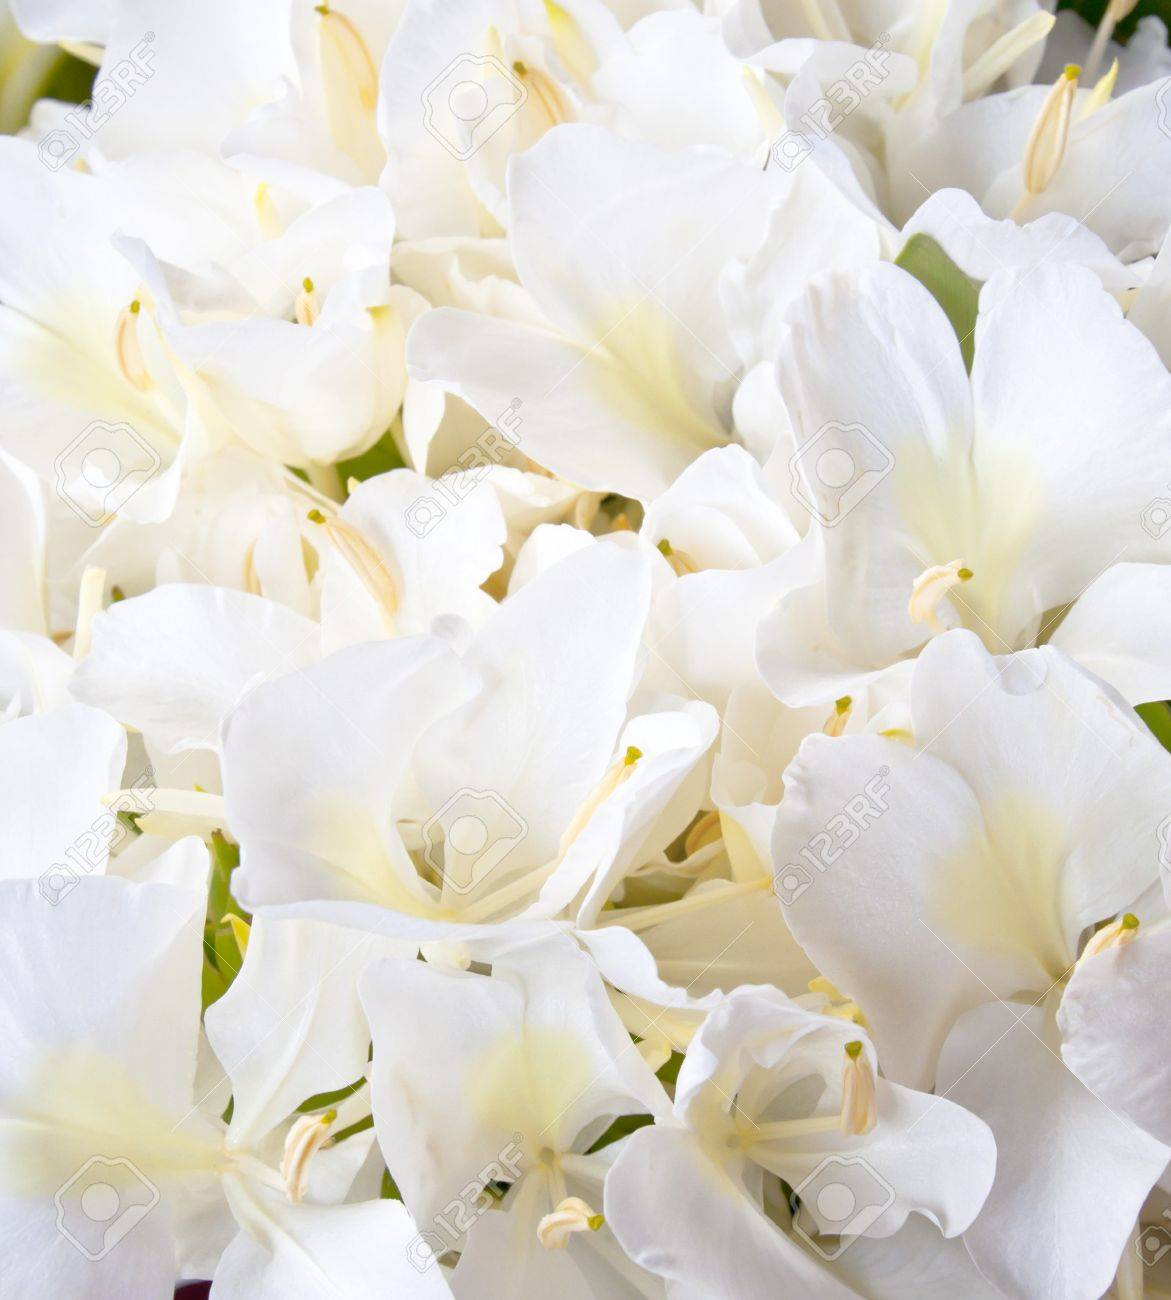 More White Ginger Flower Stock Photo Picture And Royalty Free Image